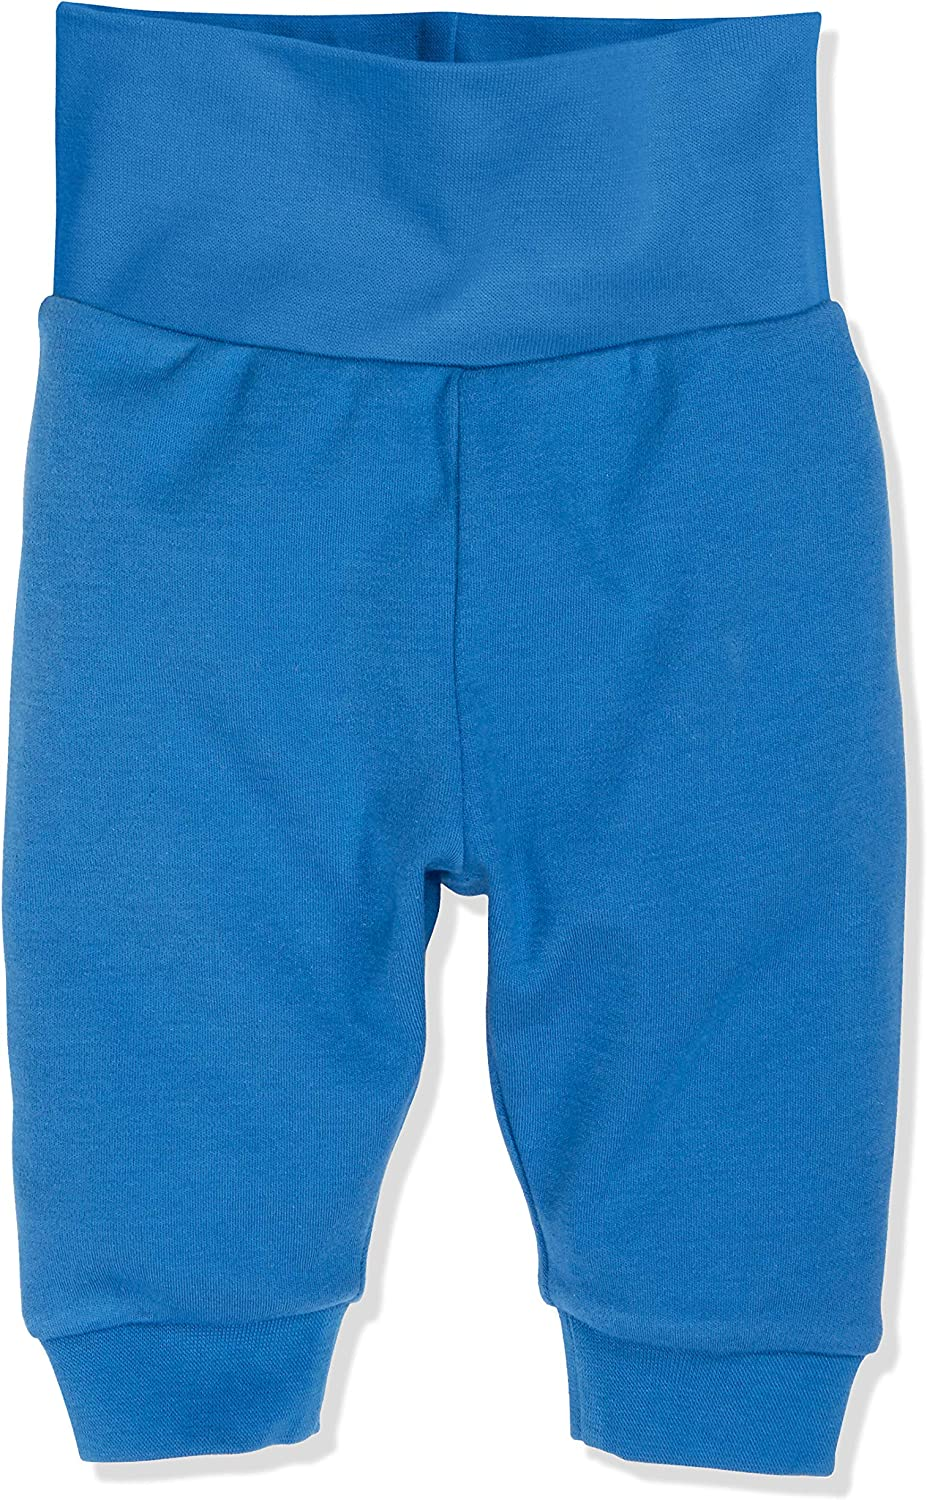 Schnizler Baby Pump Pants Interlock Trousers 12-24 Months 92 Blue